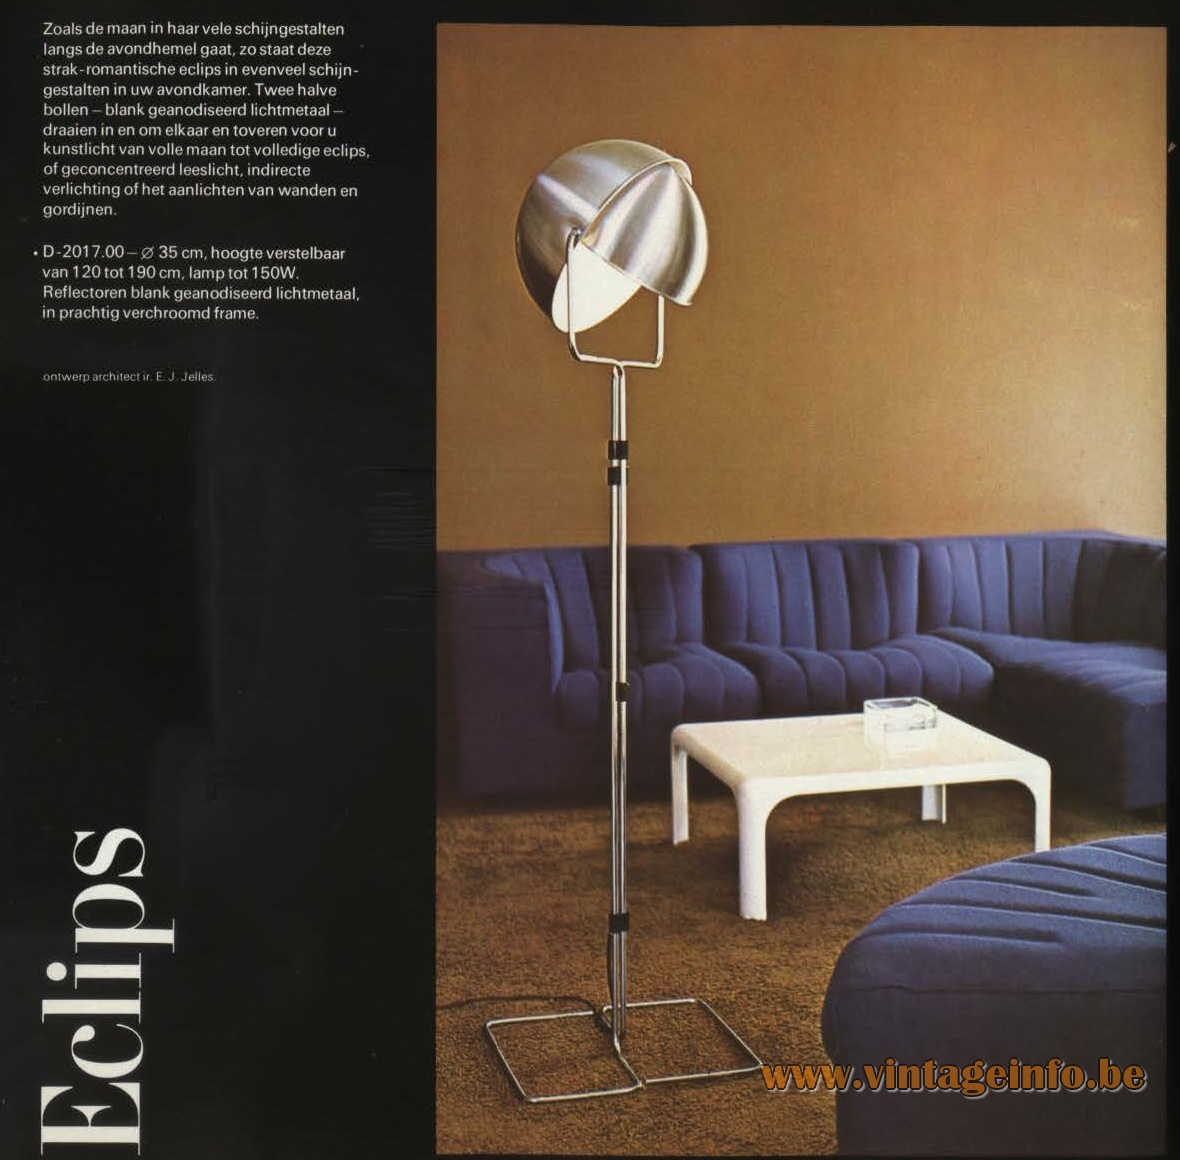 Raak Catalogue 9 - page 37 –Vintage Info – All About Vintage Lighting